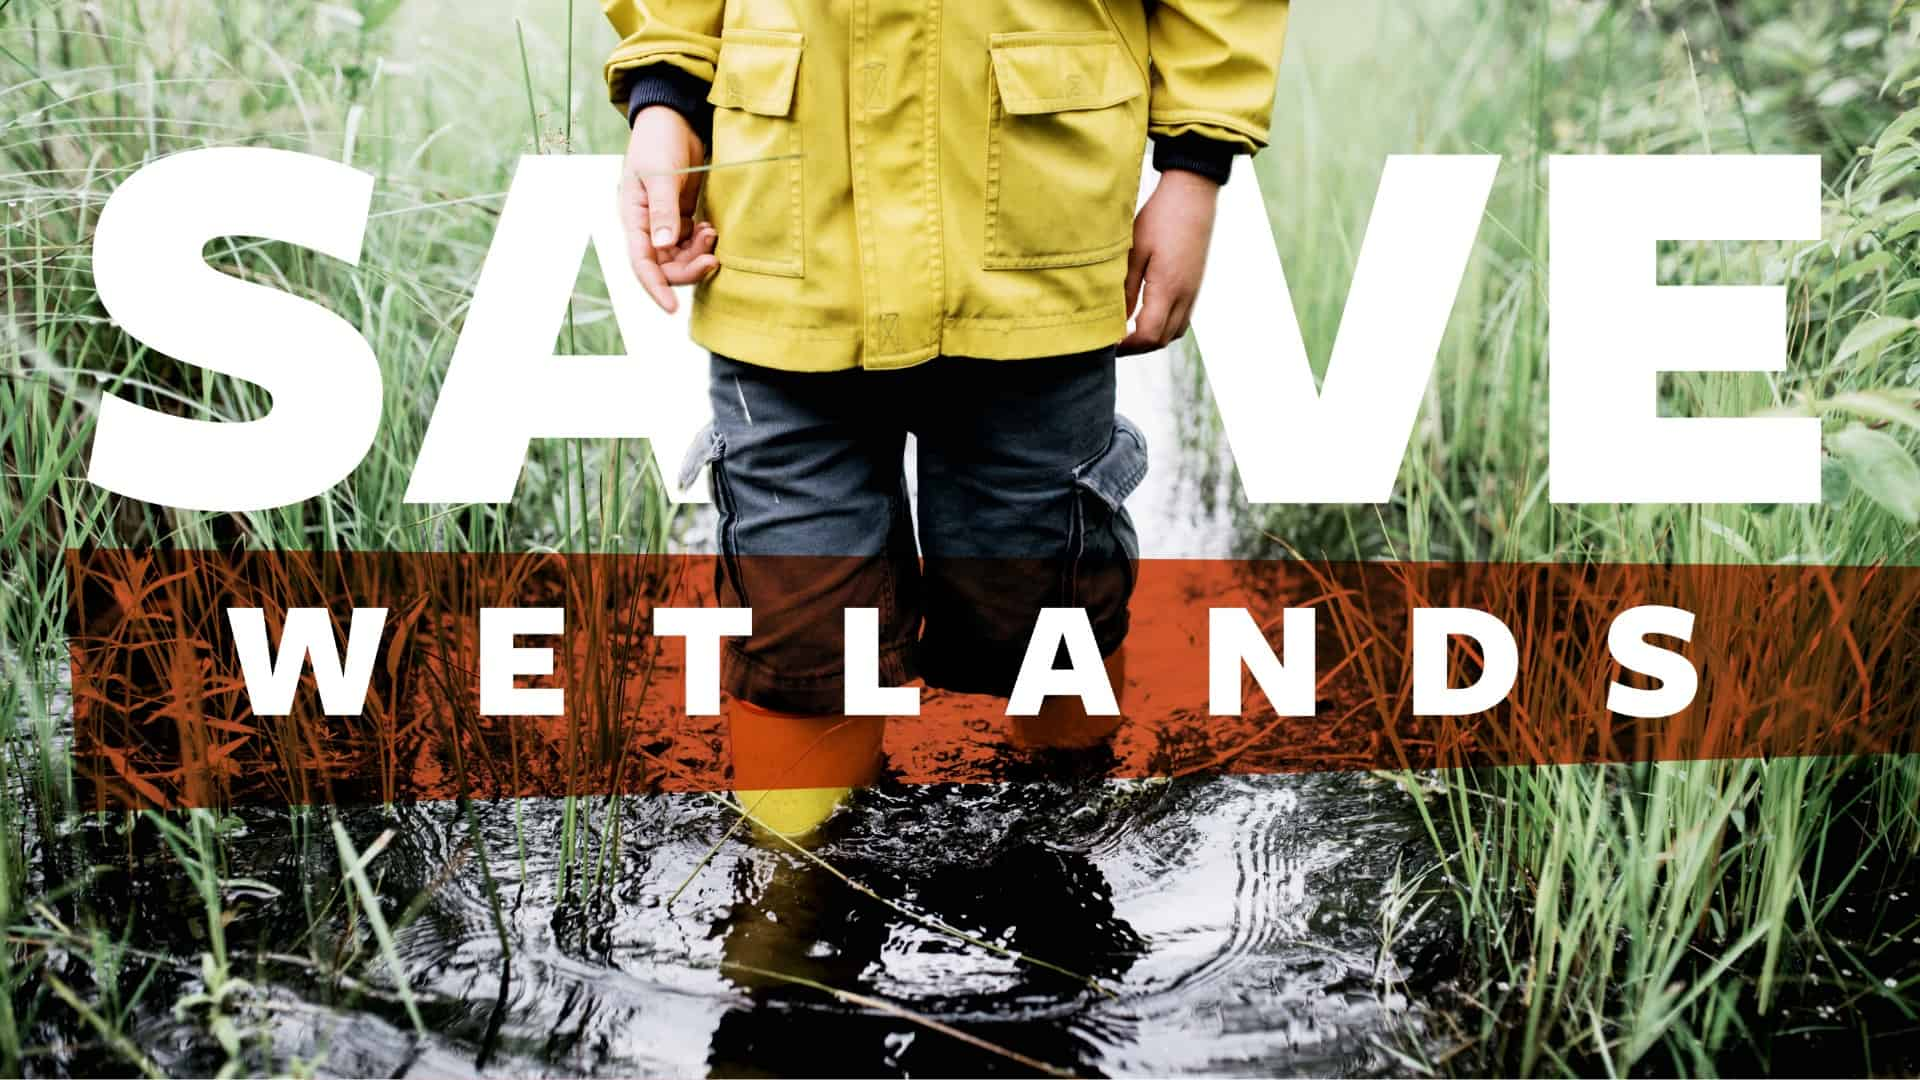 Save The Wetlands - Creative Design - Citizen Best